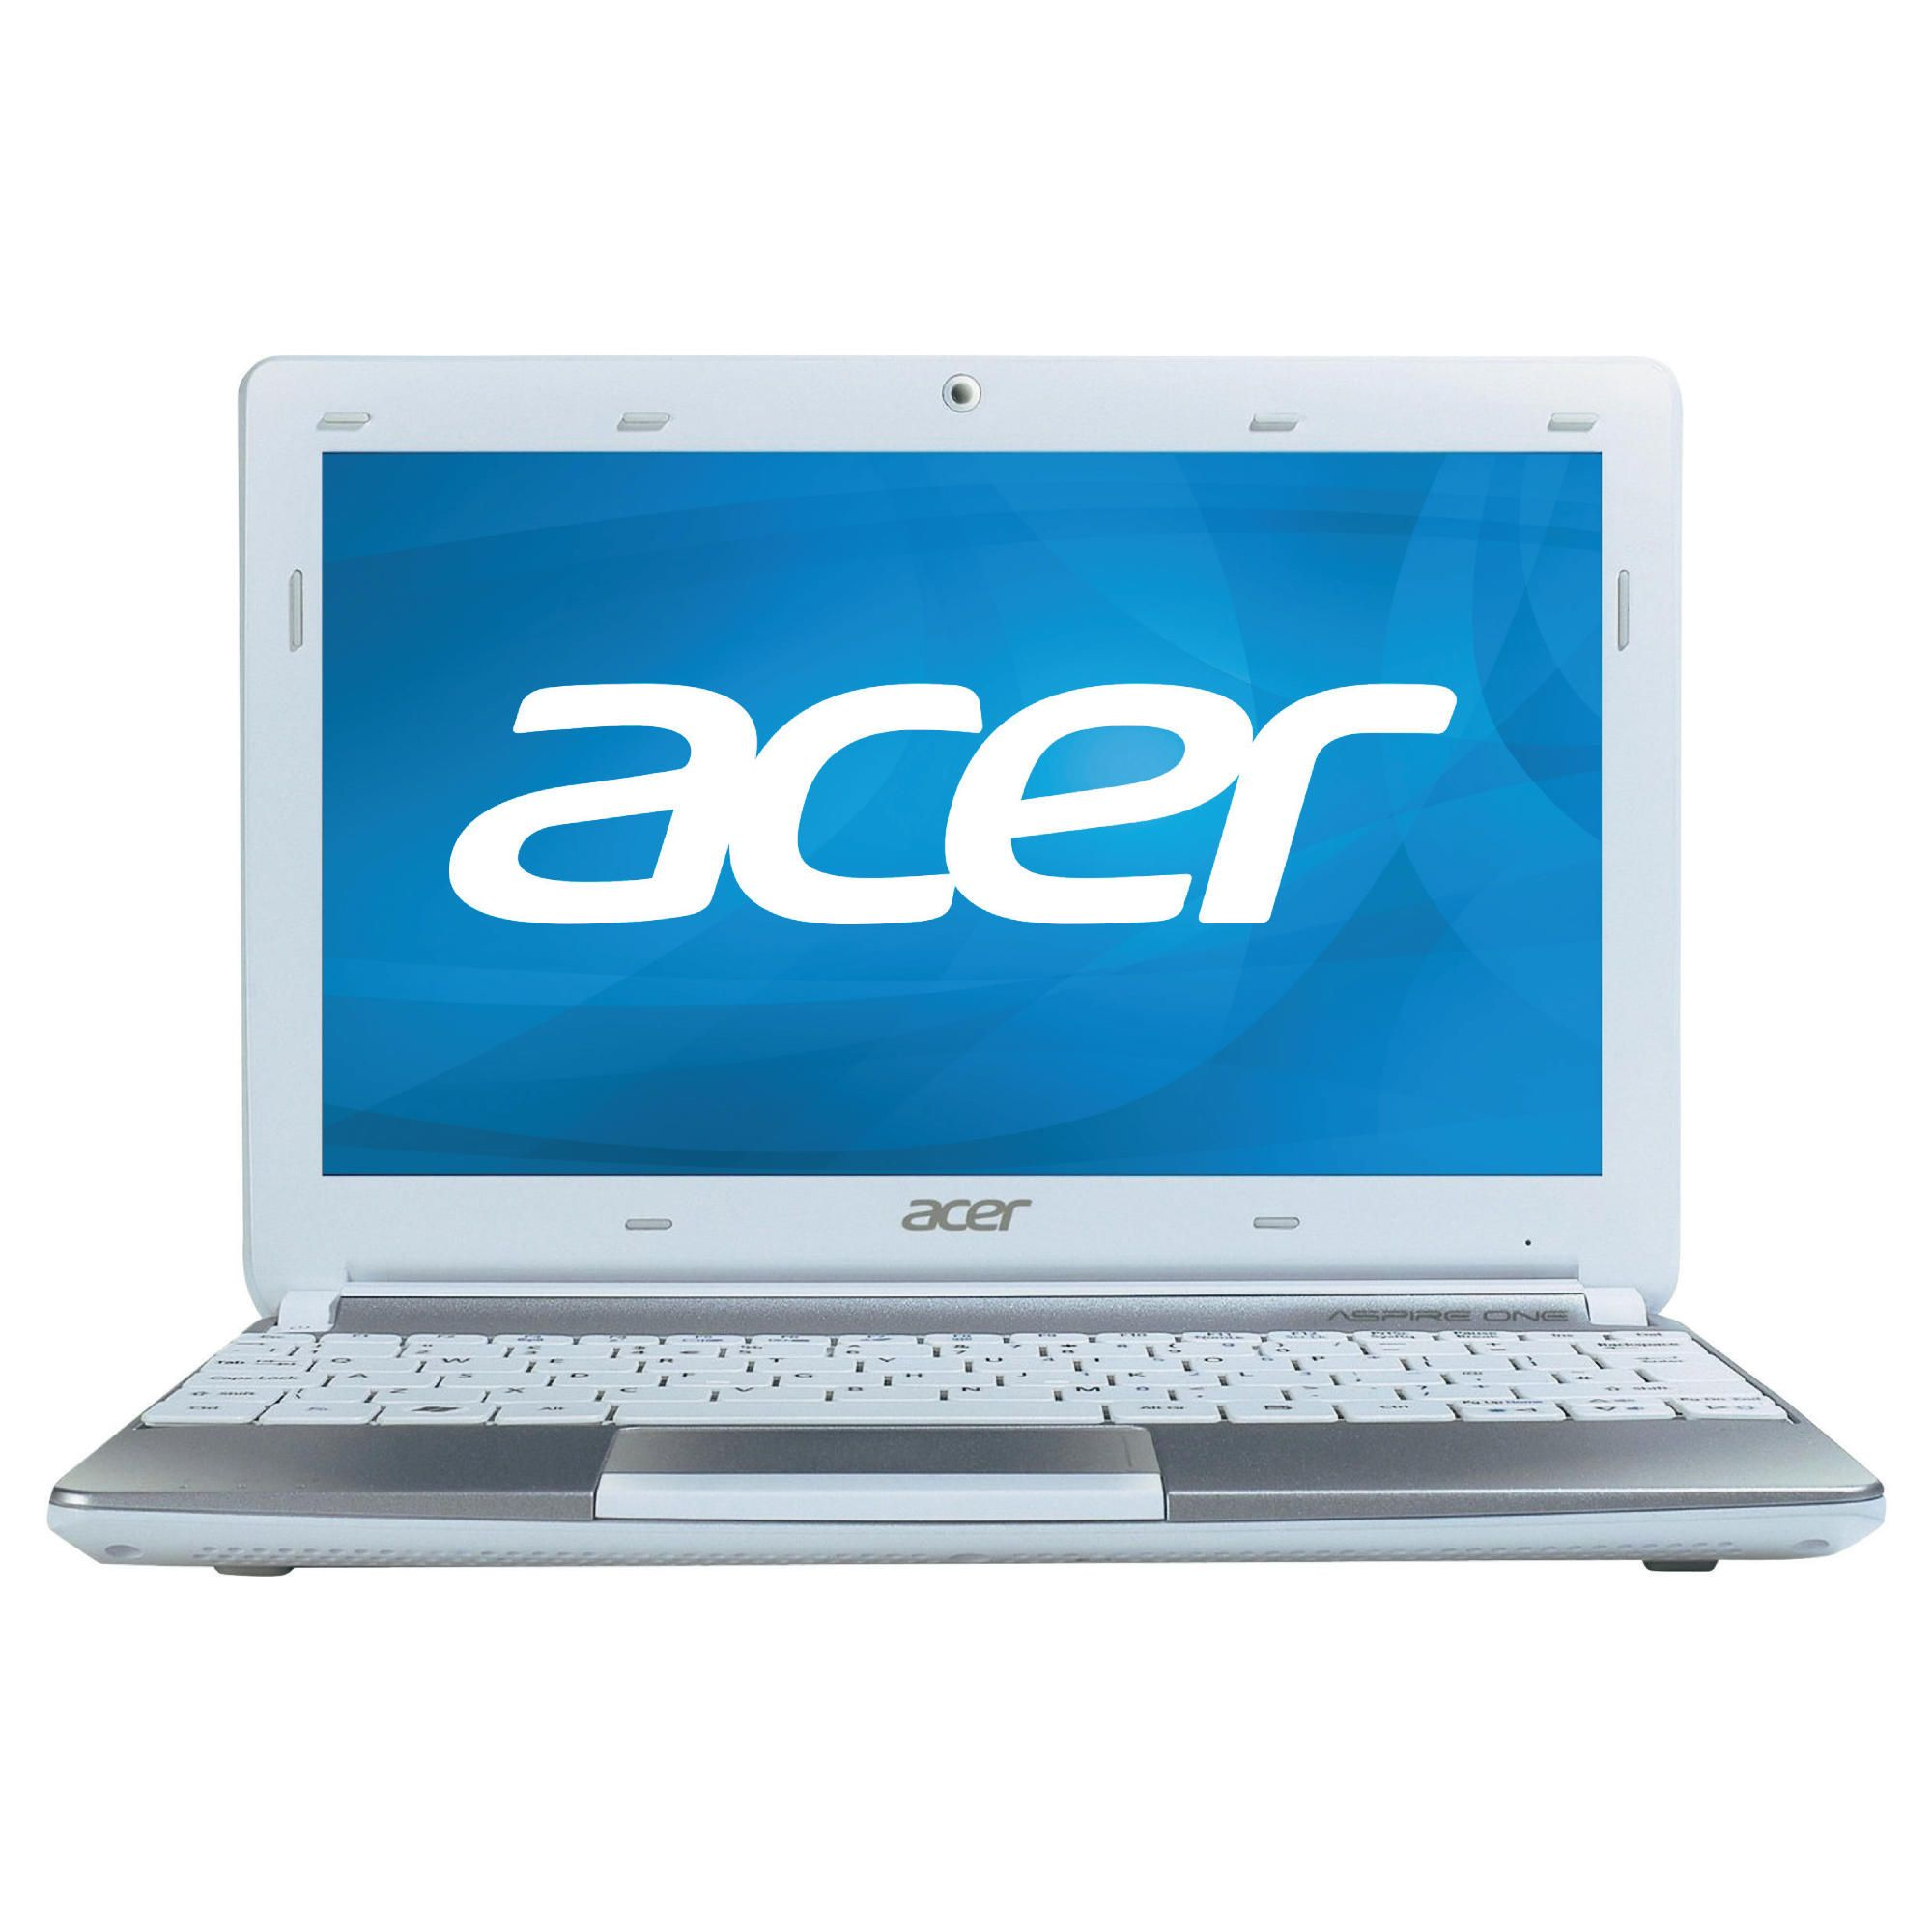 Acer Aspire One D270 Netbook (Intel Atom N2600, 1GB, 320GB, 6 Cell, 10.1'' Display) White at Tesco Direct